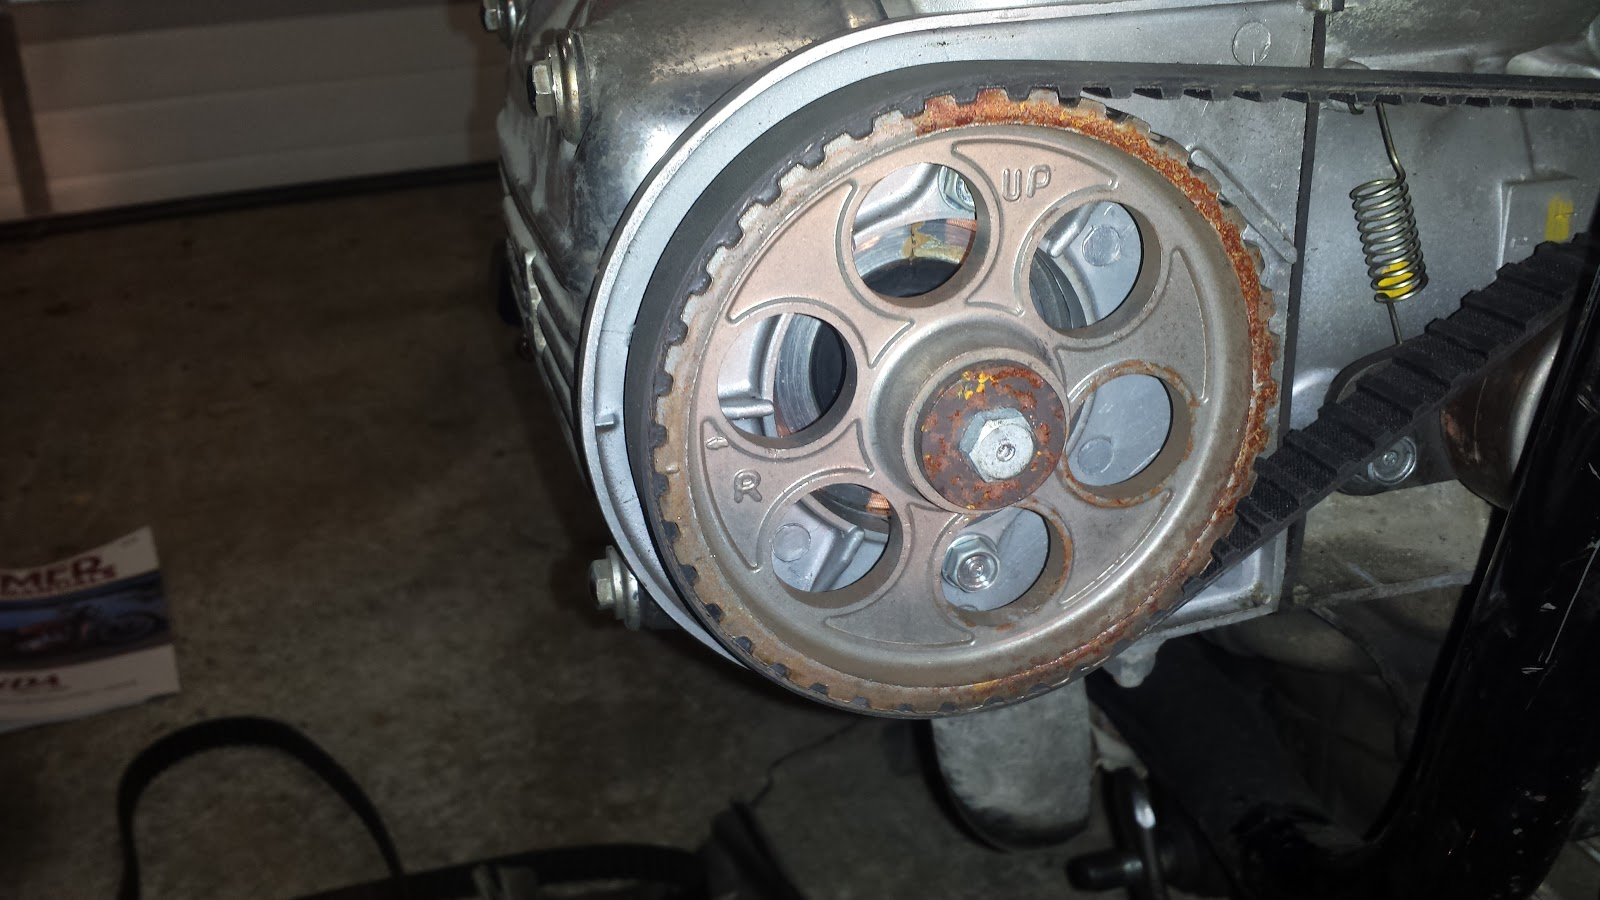 Motorcycling The Last Frontier Gl1000 Project Part 2 Timing Belts Belt Crankshaft Pulley Two Stacked Gears In Center Of Engine Until Alignment Marks On Left Hand And Right Pulleys Line Up